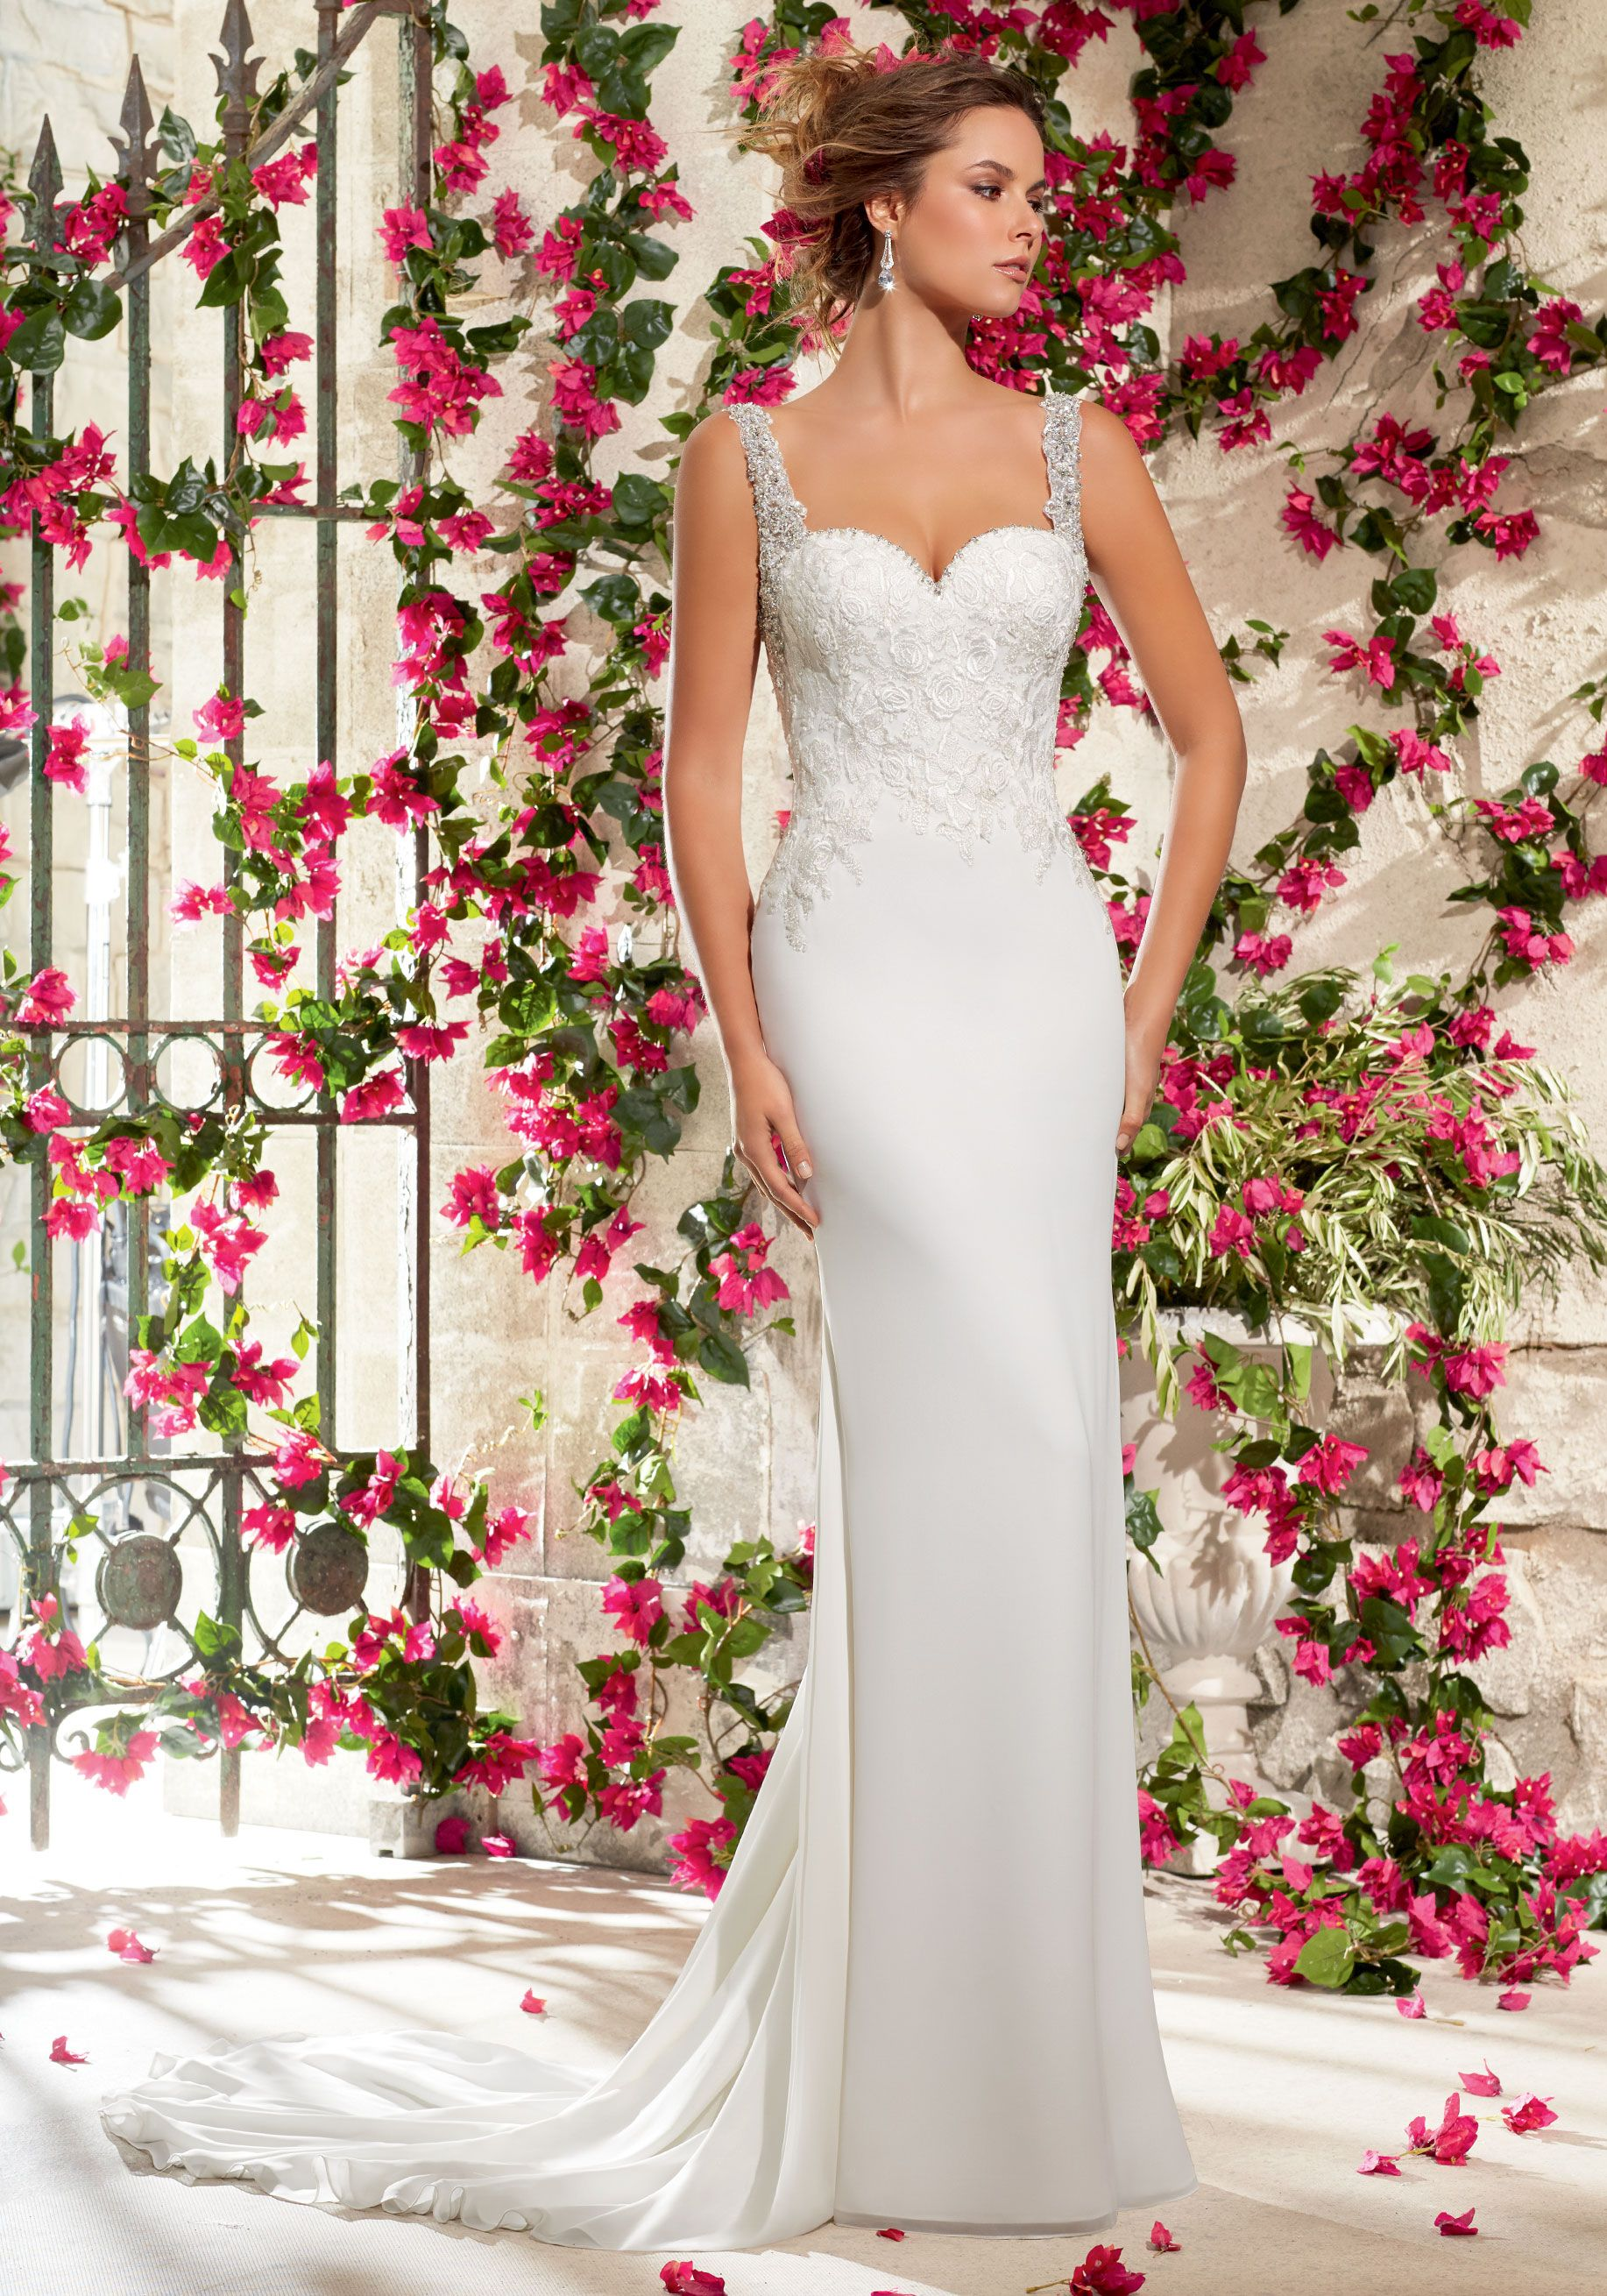 Elegant Wedding Dress Chiffon Georgette with Embroidery and Crystal Beading Designed by Madeline Gardner. Colors available: White/Silver and Ivory/Silver.